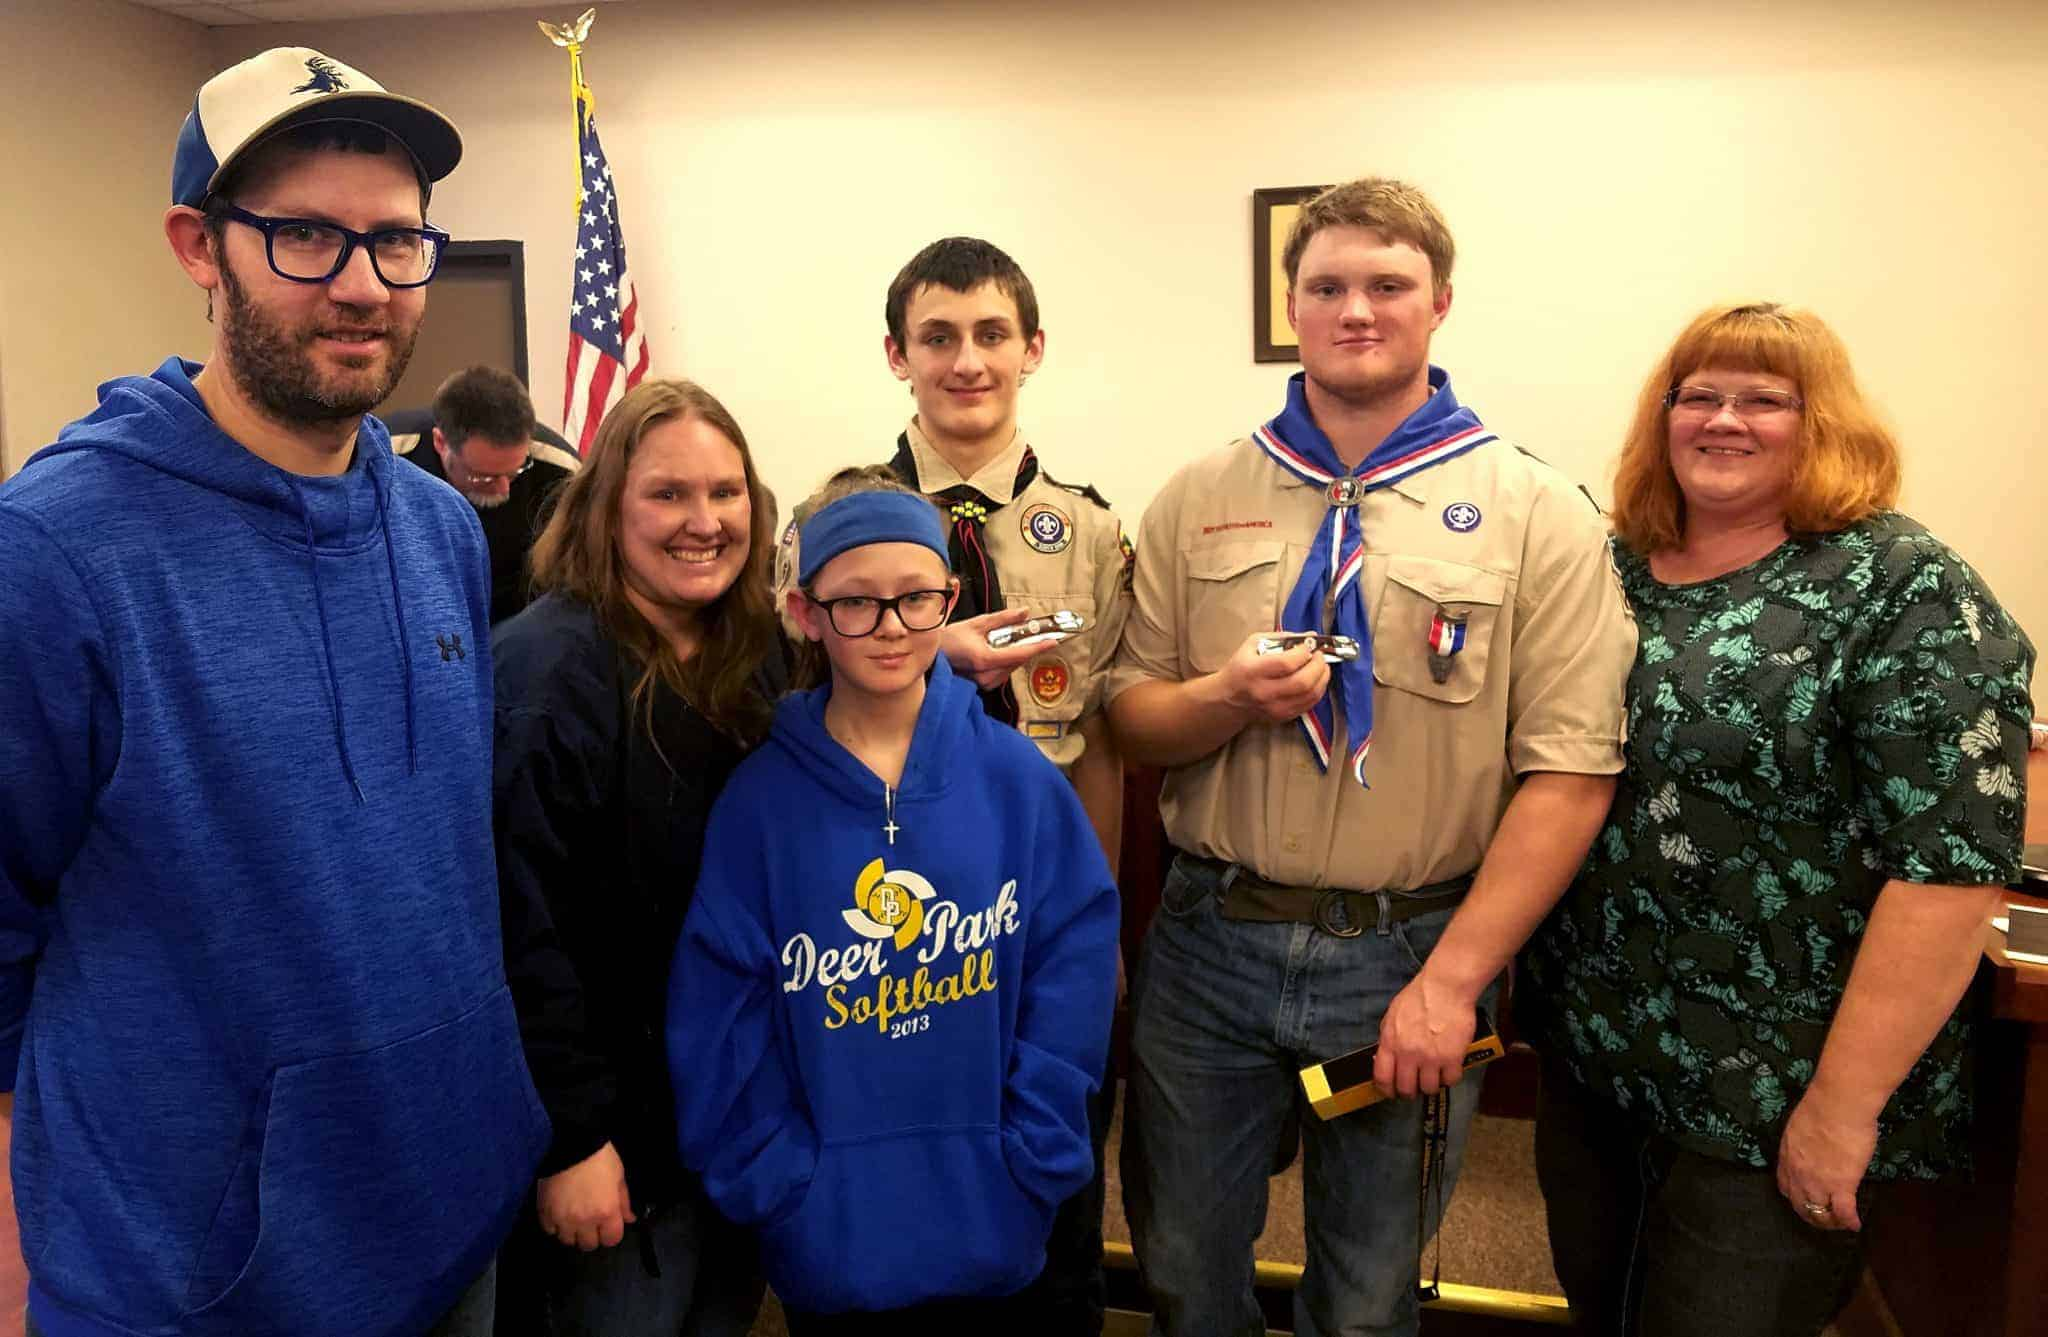 Eagle Scouts Dylan Hall and Aiden Shroyer with family and friends